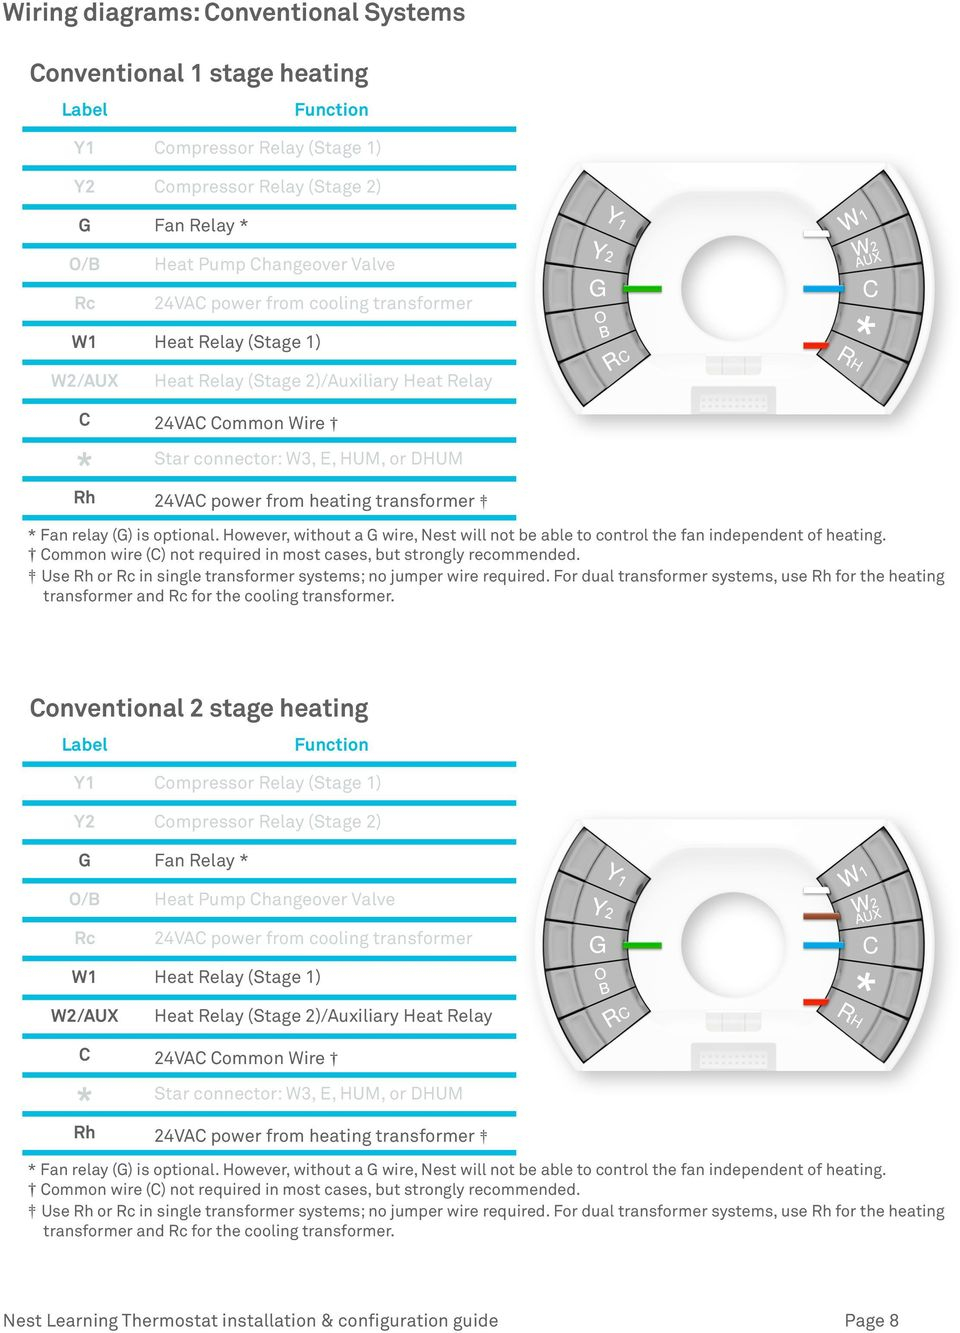 Nest Learning Thermostat Pro Installation & Configuration Guide - Pdf - Nest Wiring Diagram For Heat Pump Two Stage Heat One Stage Cooling